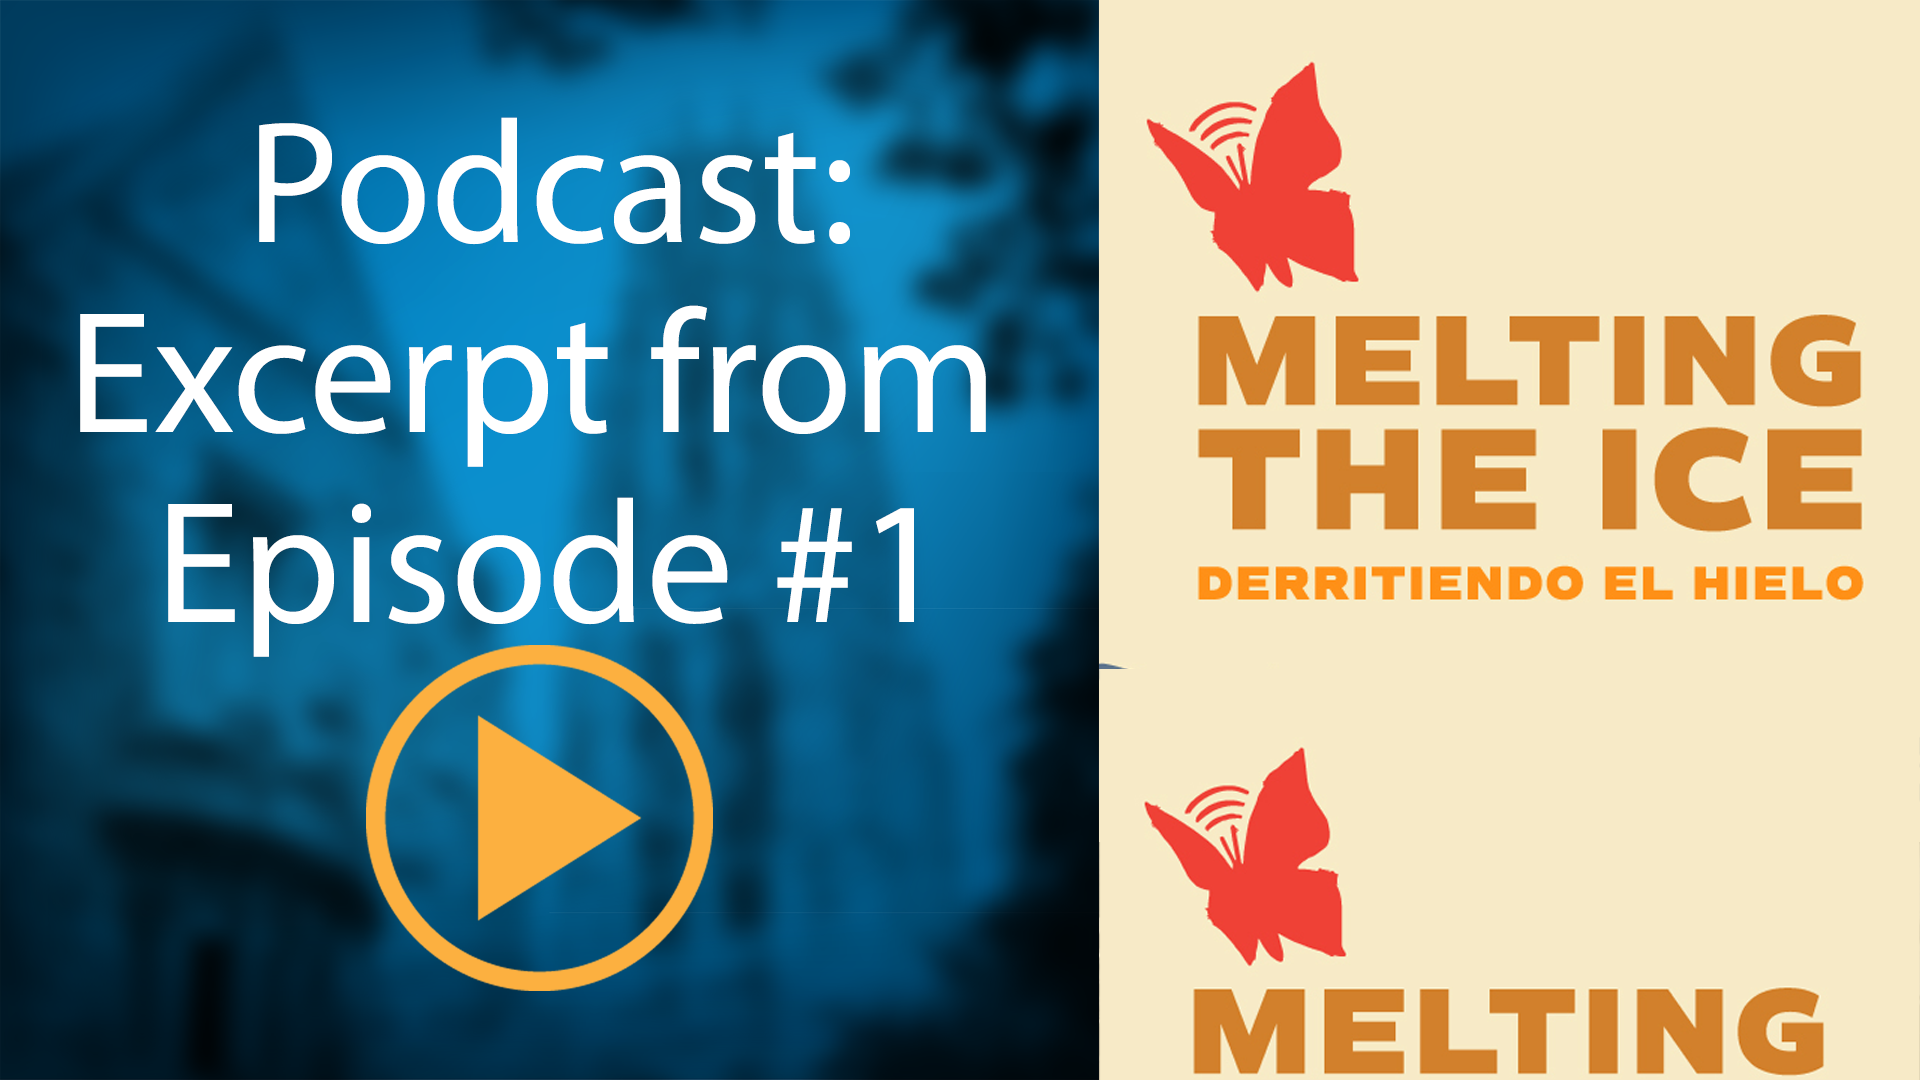 """Podcast: Excerpt from the first episode of """"Melting the Ice"""""""